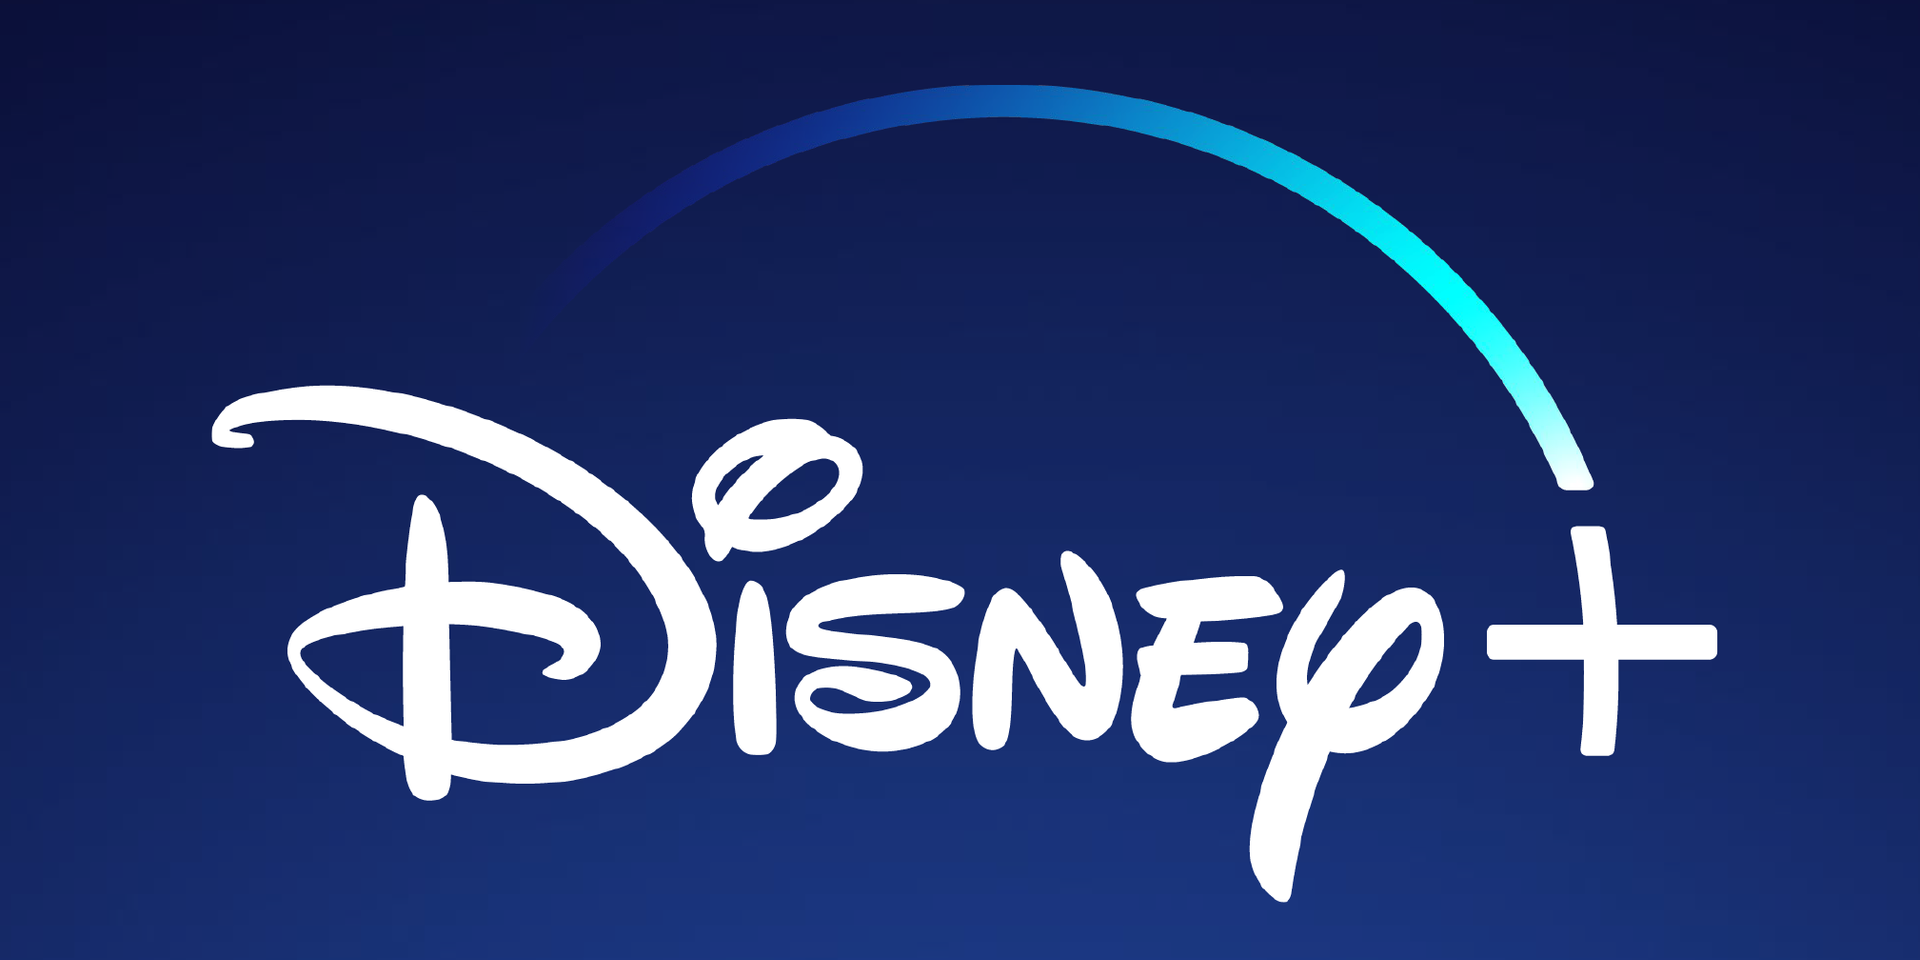 www.bandwagon.asia: Disney+ is coming to Singapore in February 2021